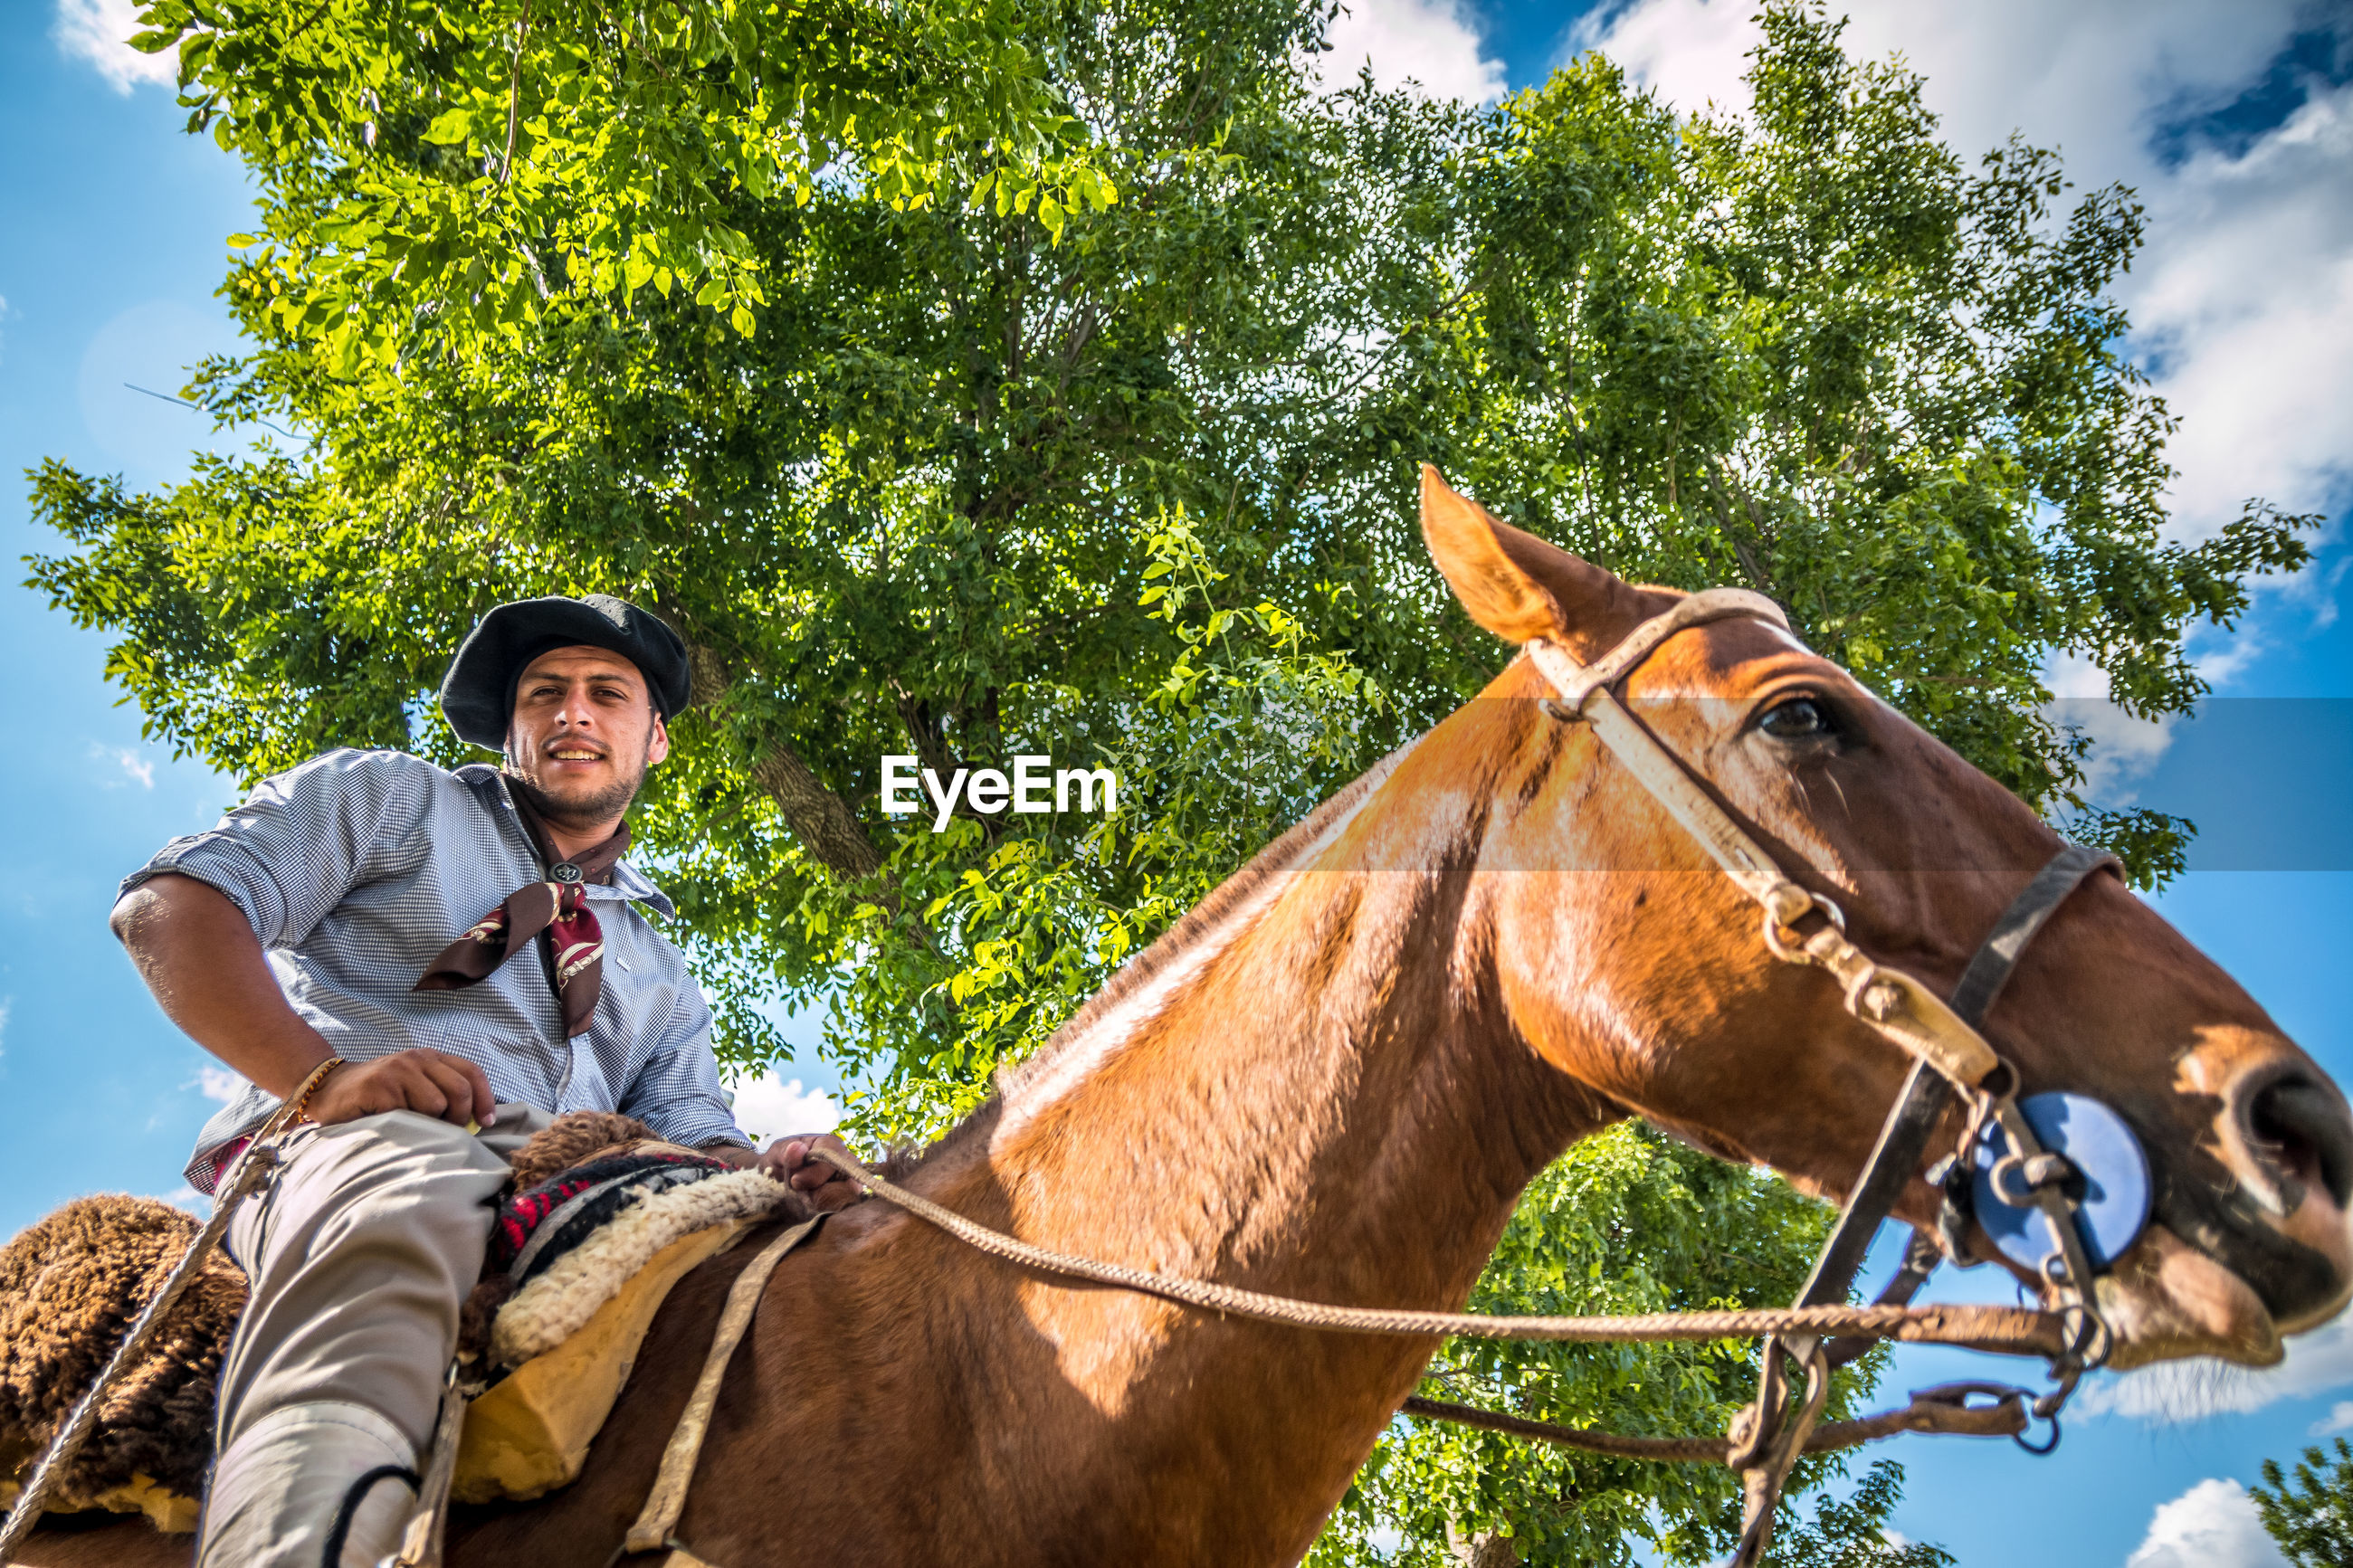 Low angle portrait of man riding horse